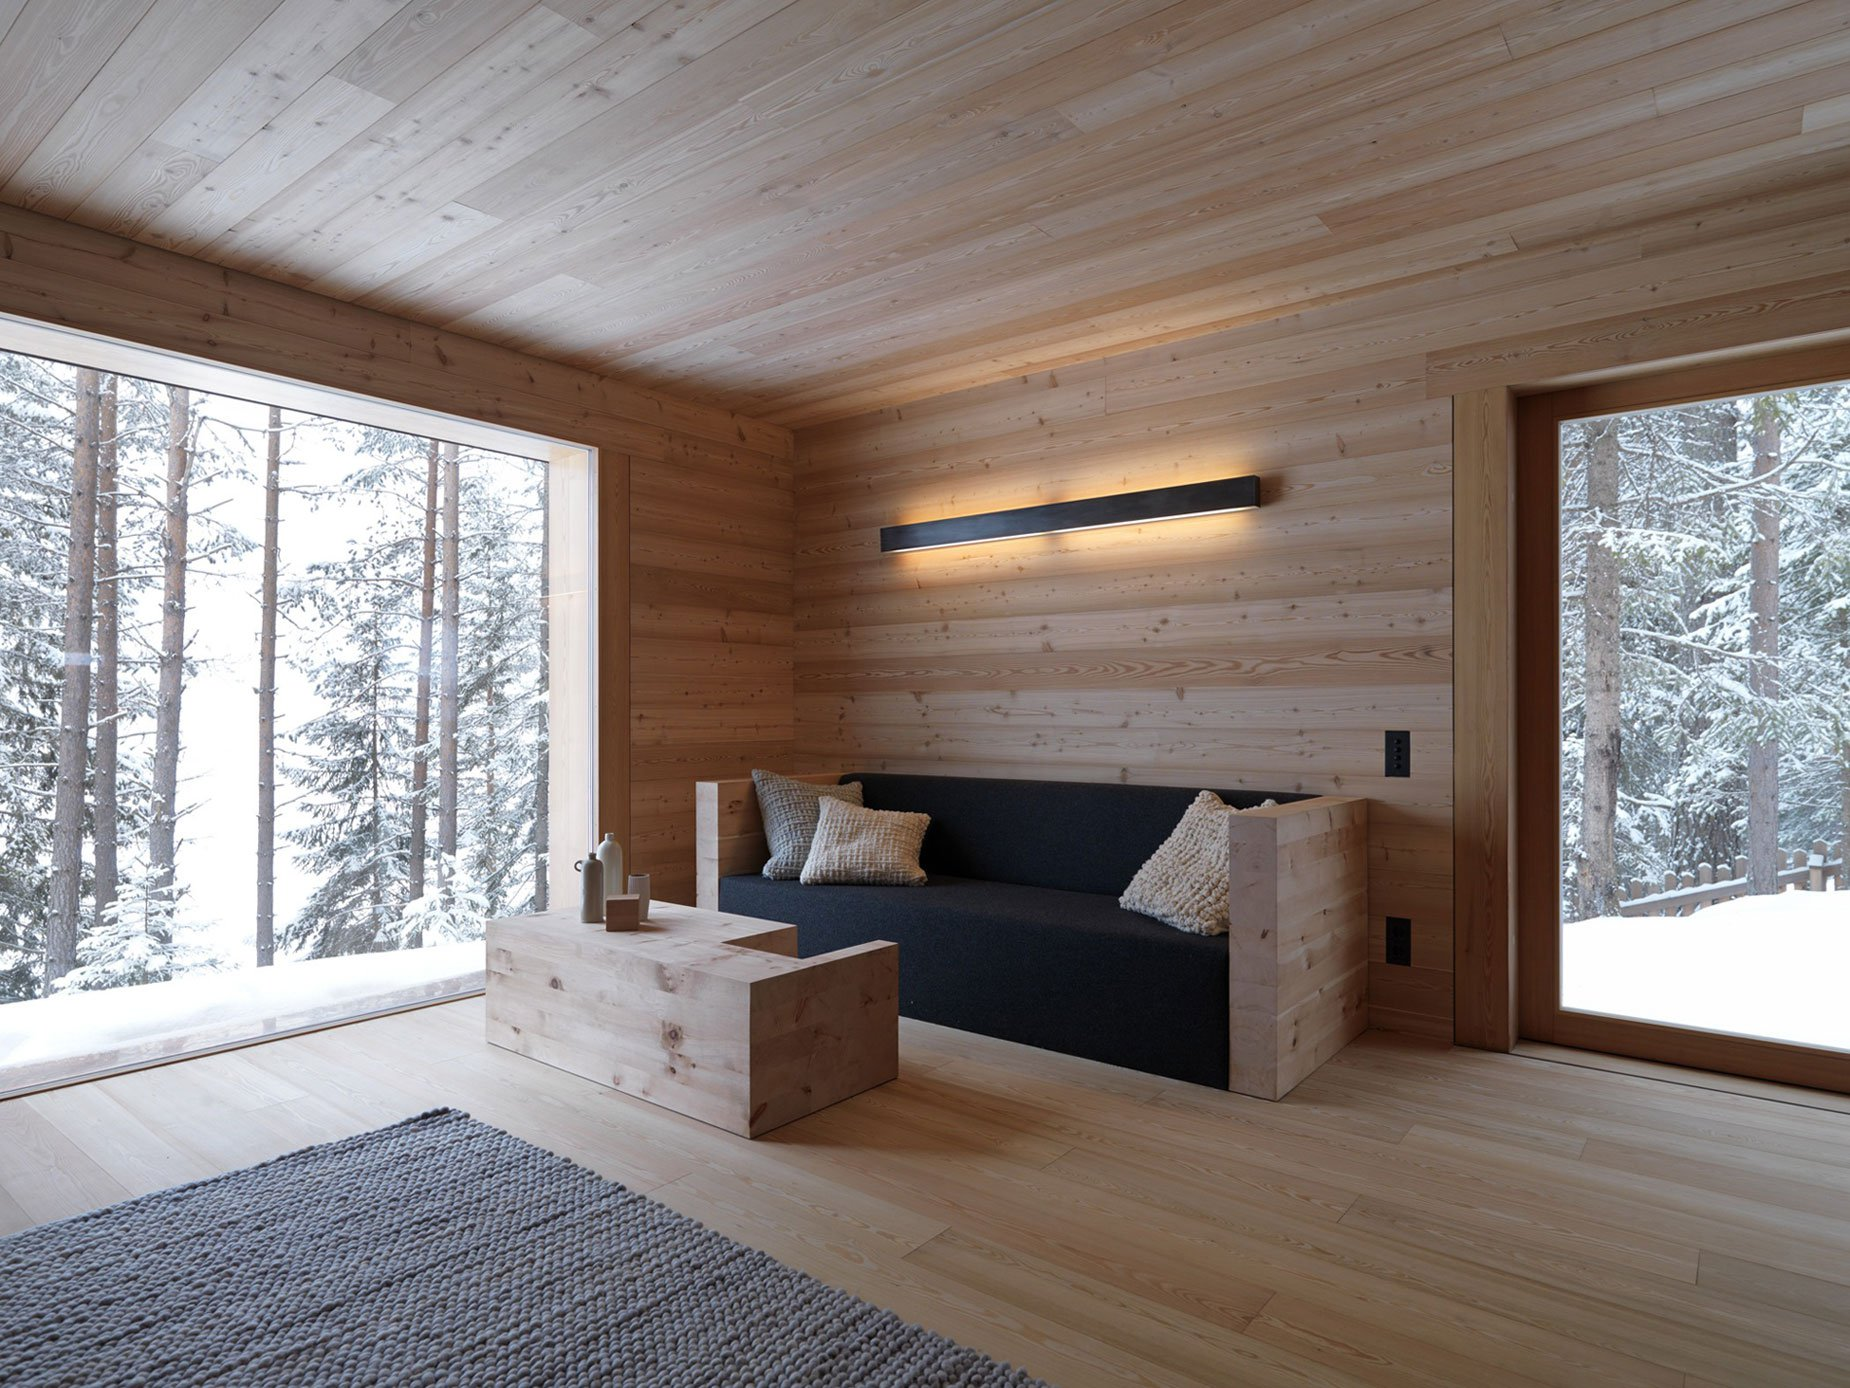 Wood panelling on floor and wall, great inspiration for a biophilic design.